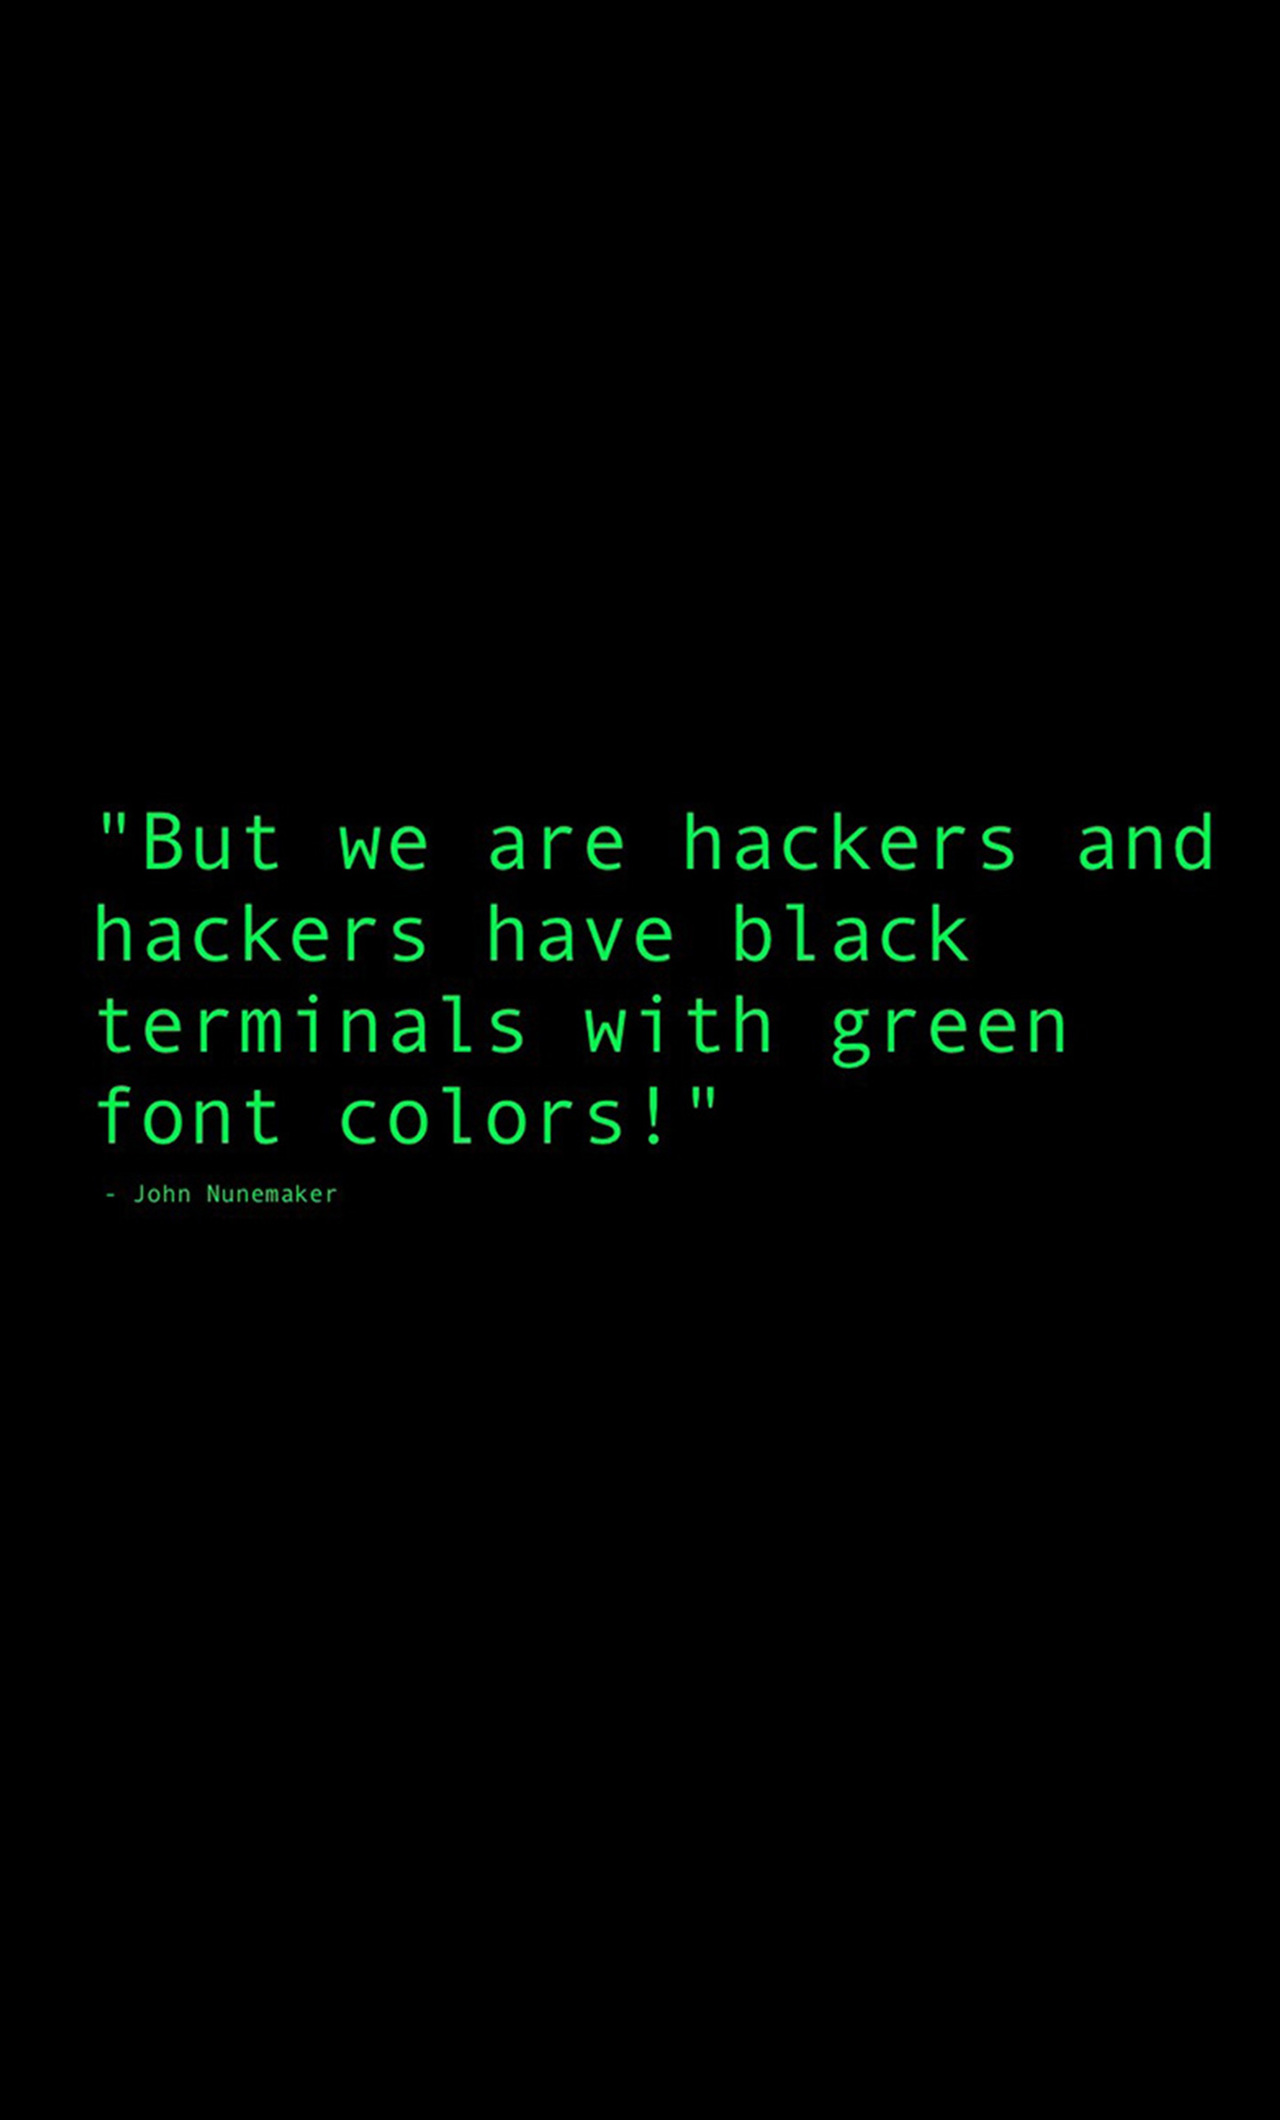 black-terminals-with-green-font-colors-quote-6g.jpg